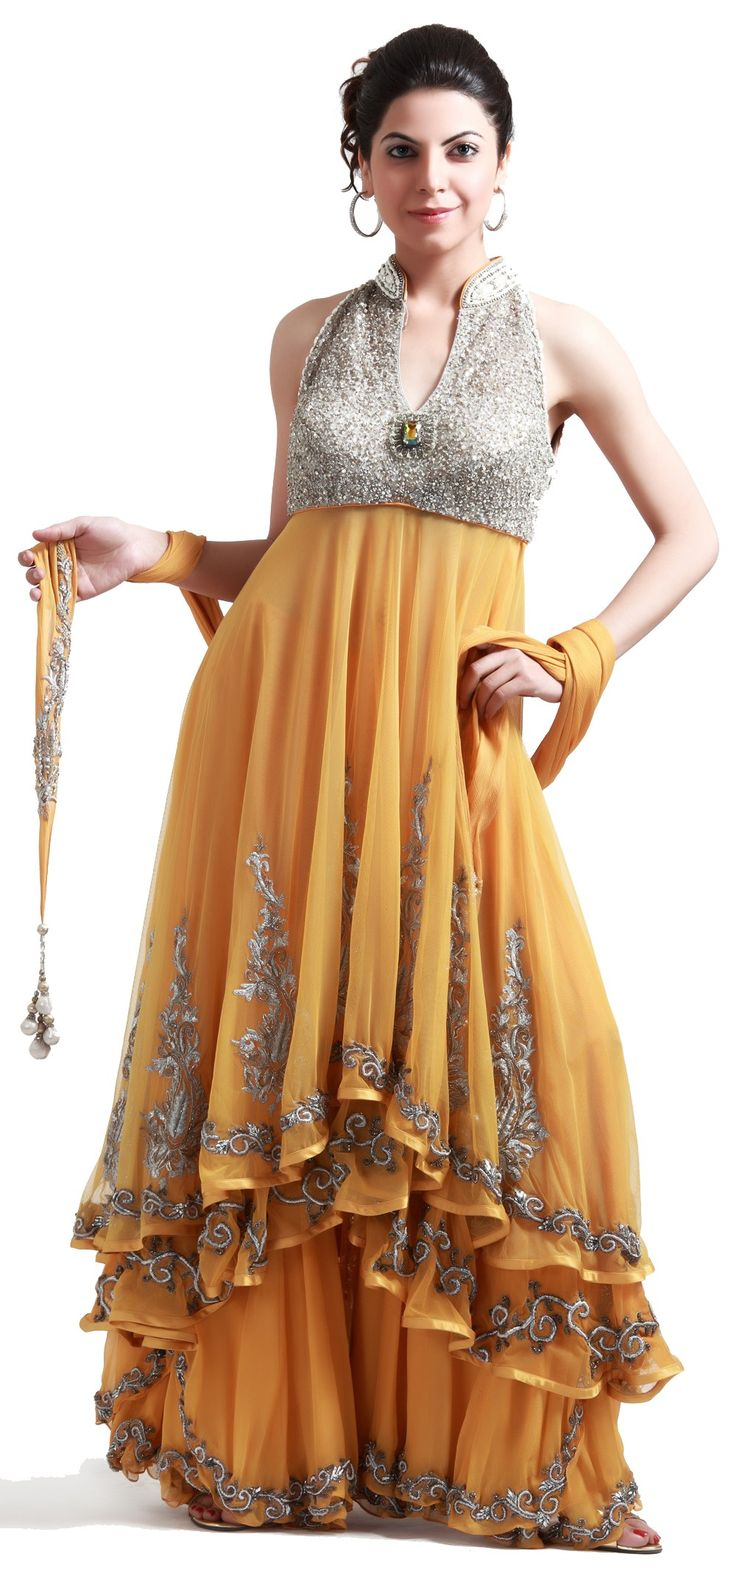 96 best Desi style images on Pinterest   Indian dresses, Indian ...